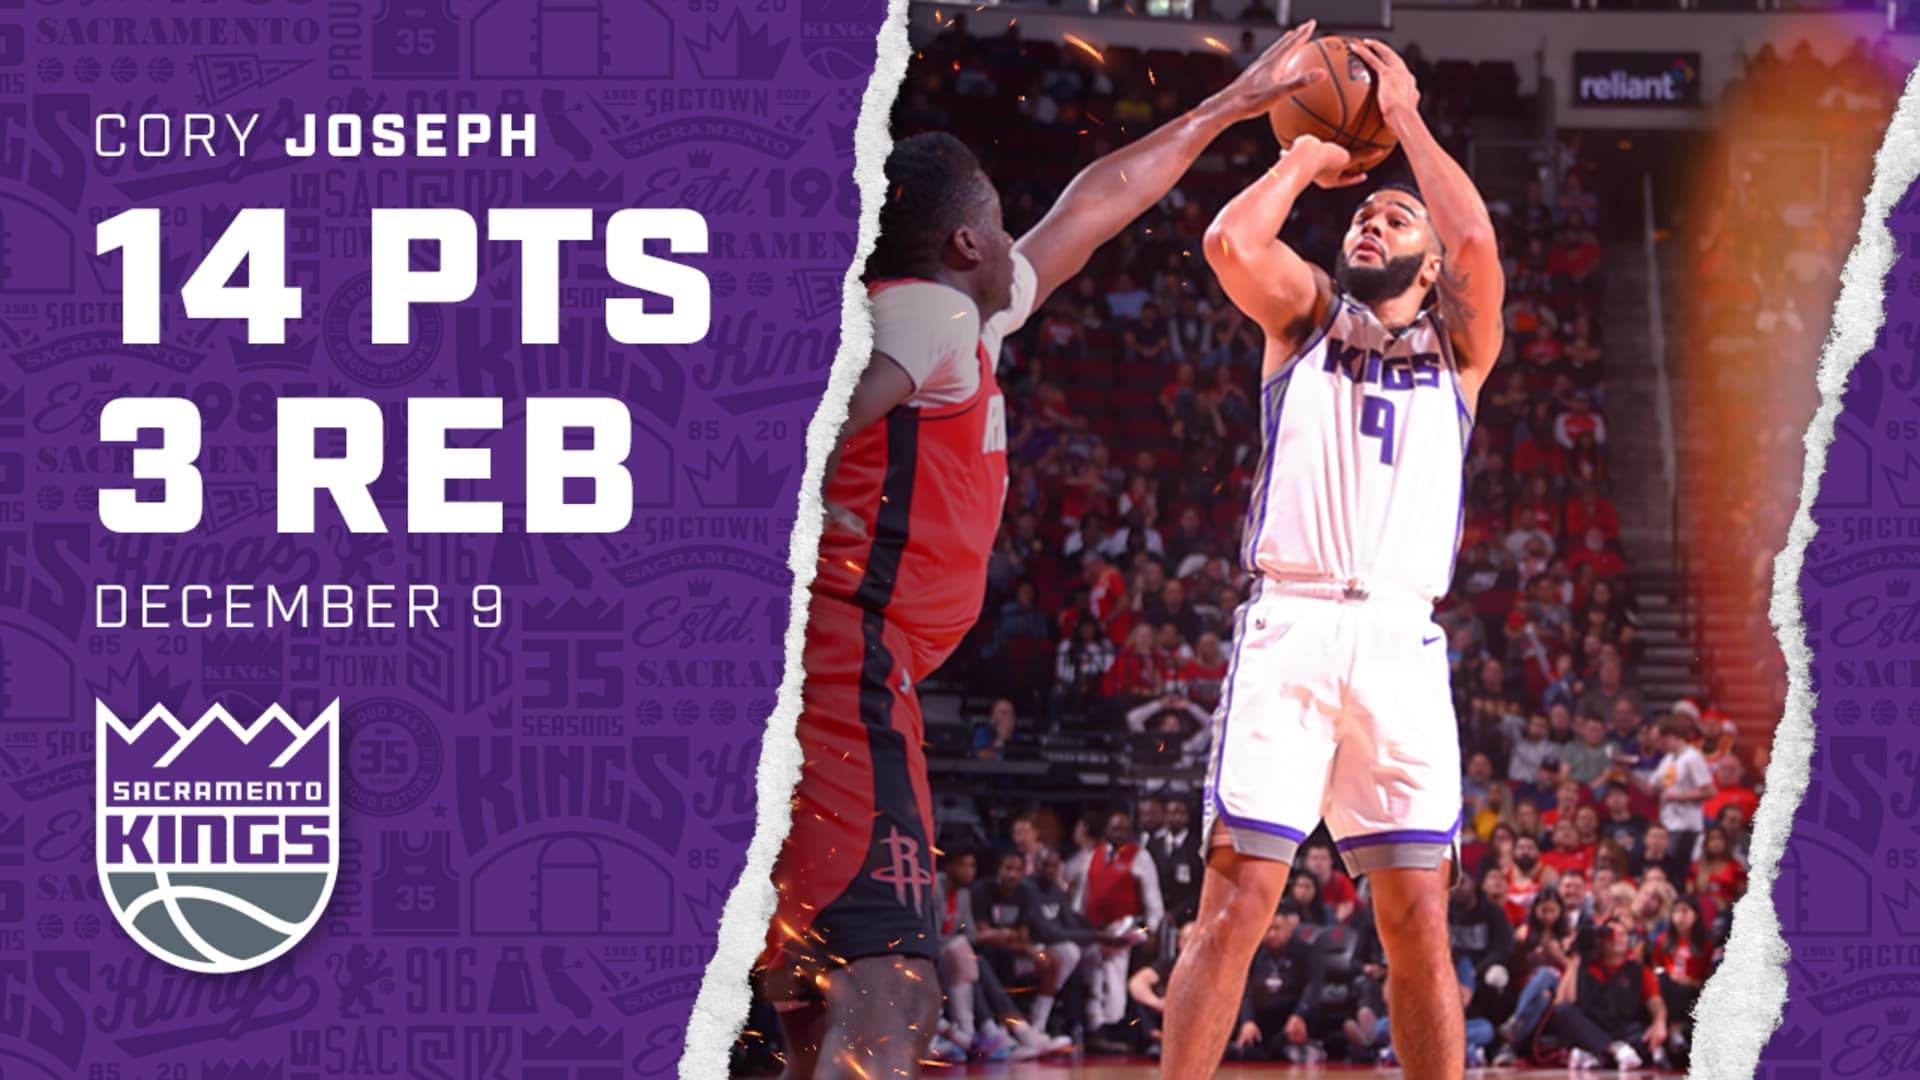 Cory Joe Helps Lead Kings to Huge W in Houston | Kings vs Rockets